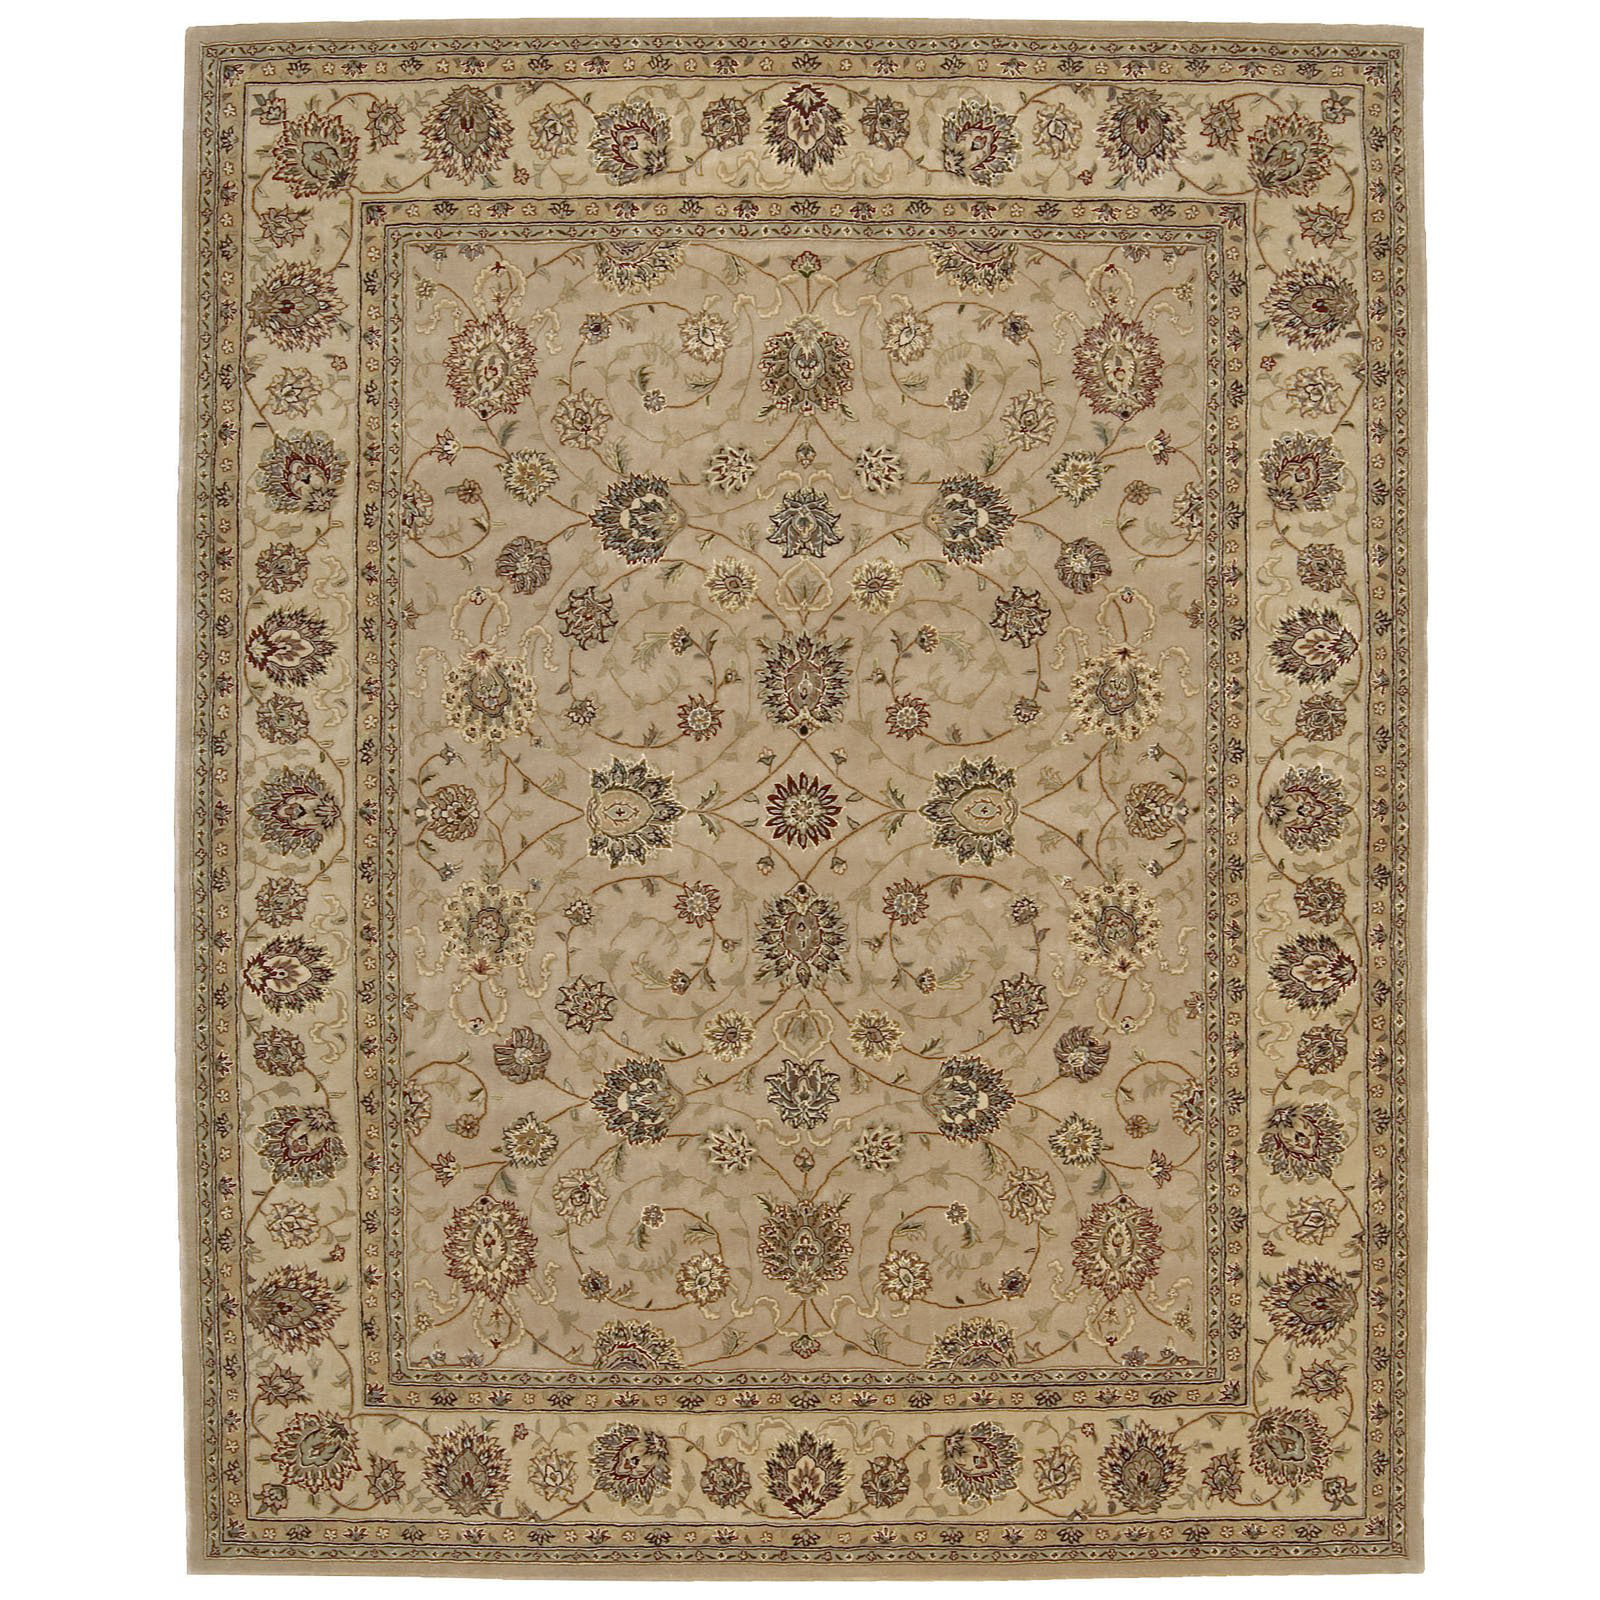 Nourison 2000 2071 Oriental Rug Camel-2 x 3 ft. by Overstock